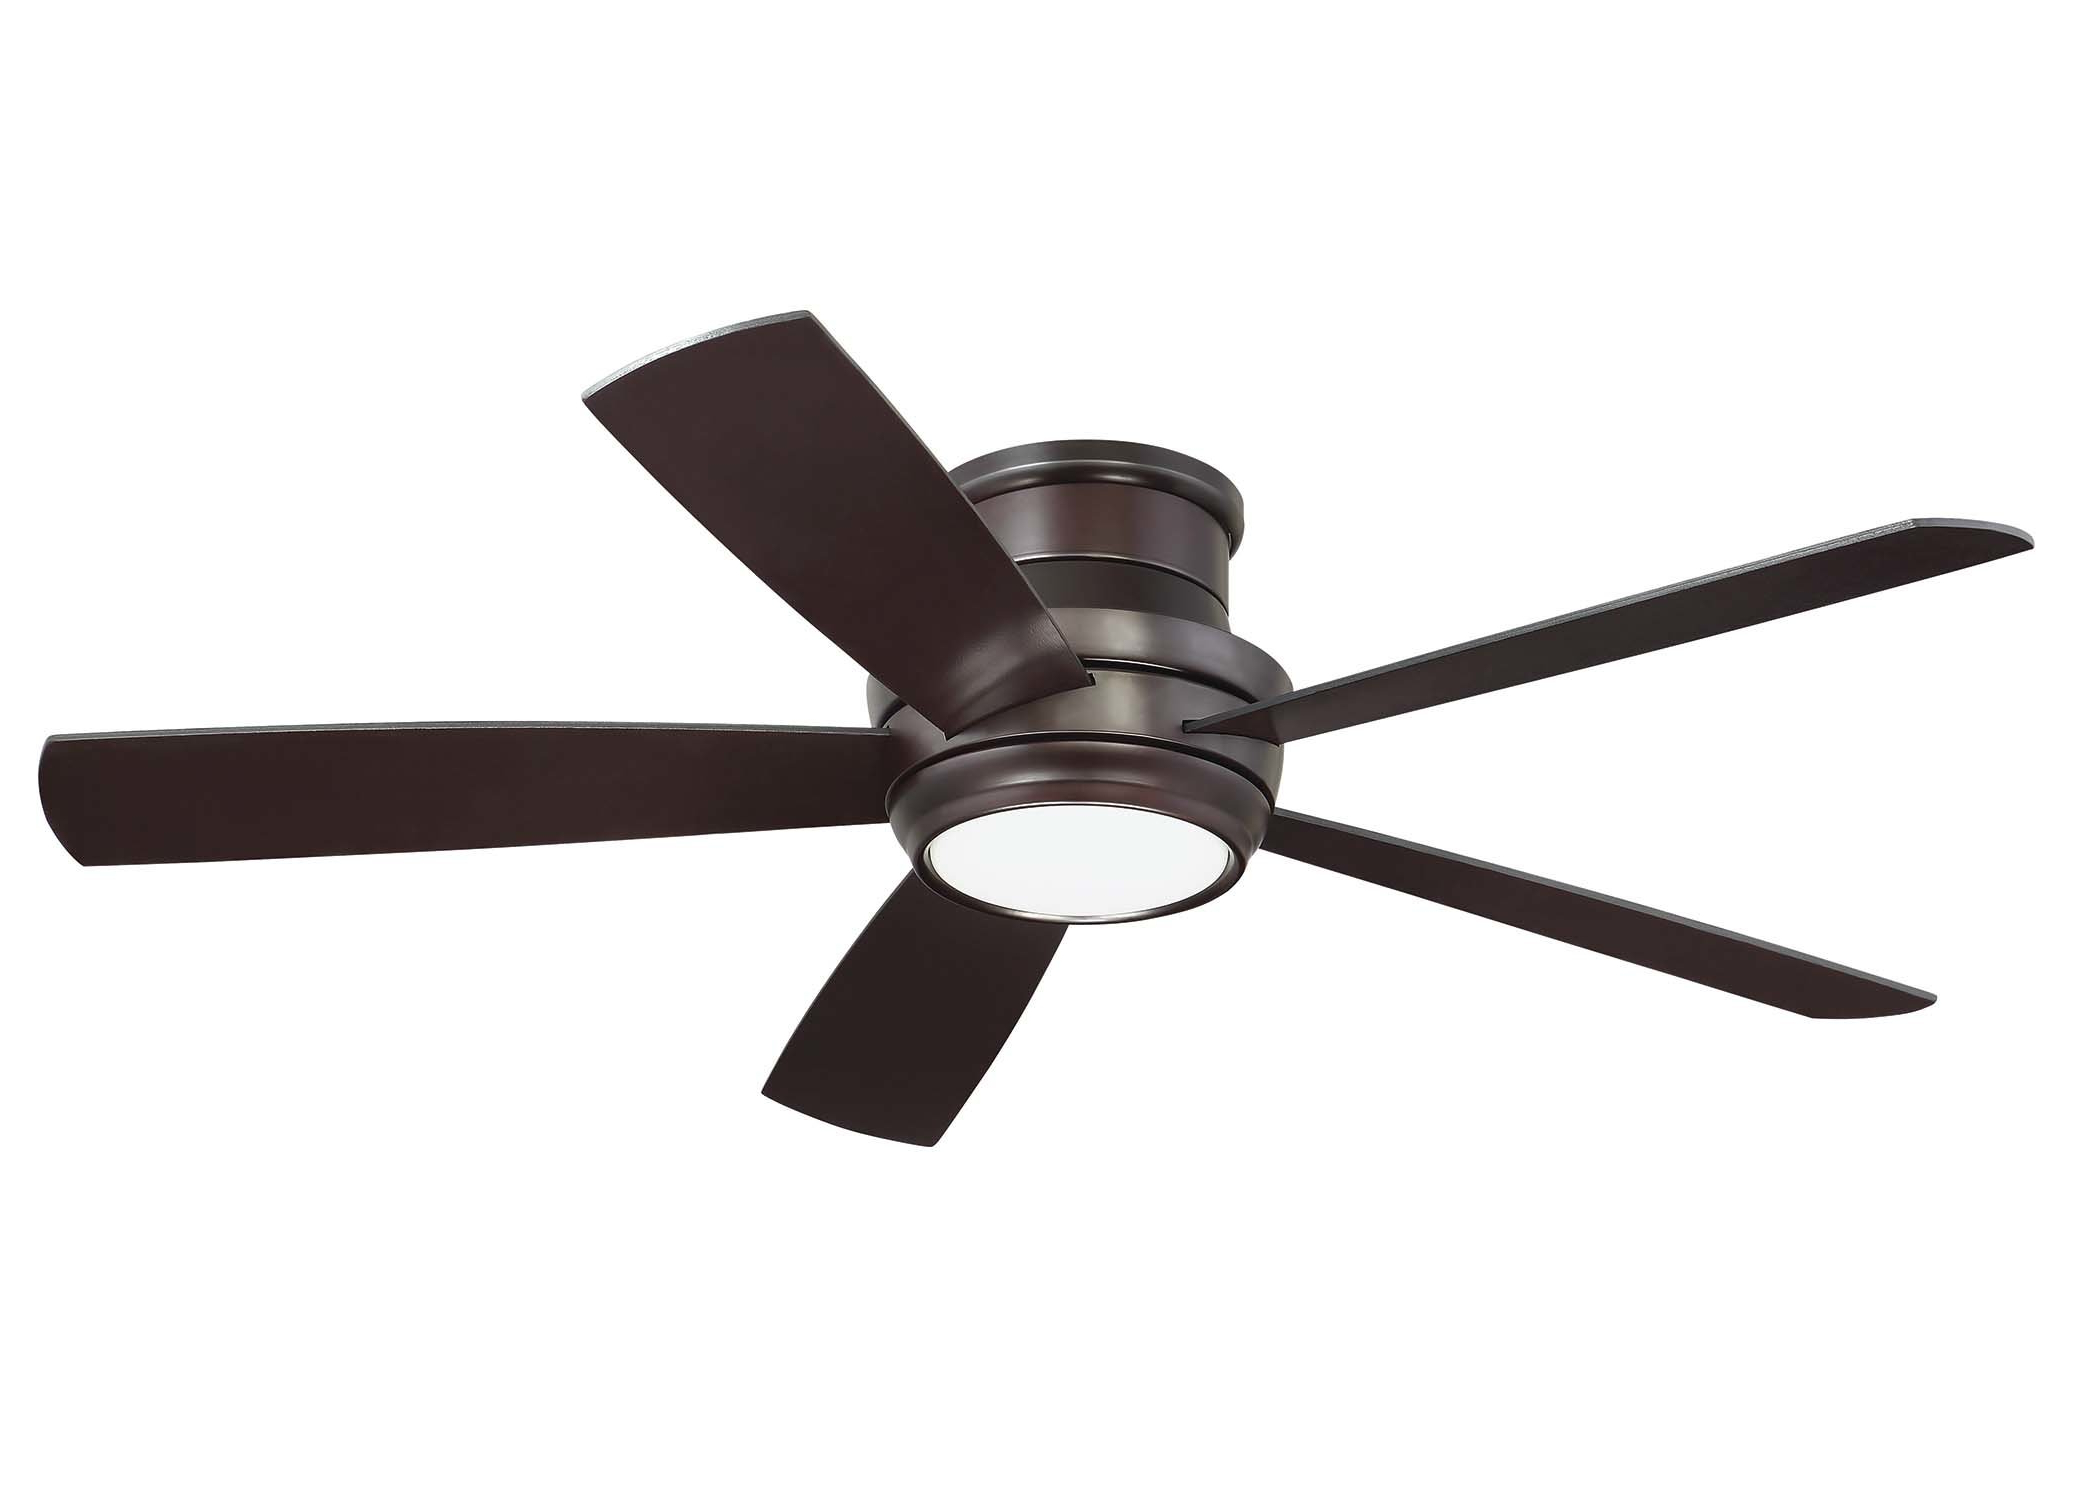 """Current Creslow 5 Blade Ceiling Fans Intended For 52"""" Cedarton 5 Blade Led Ceiling Fan With Remote, Light Kit Included (View 10 of 20)"""